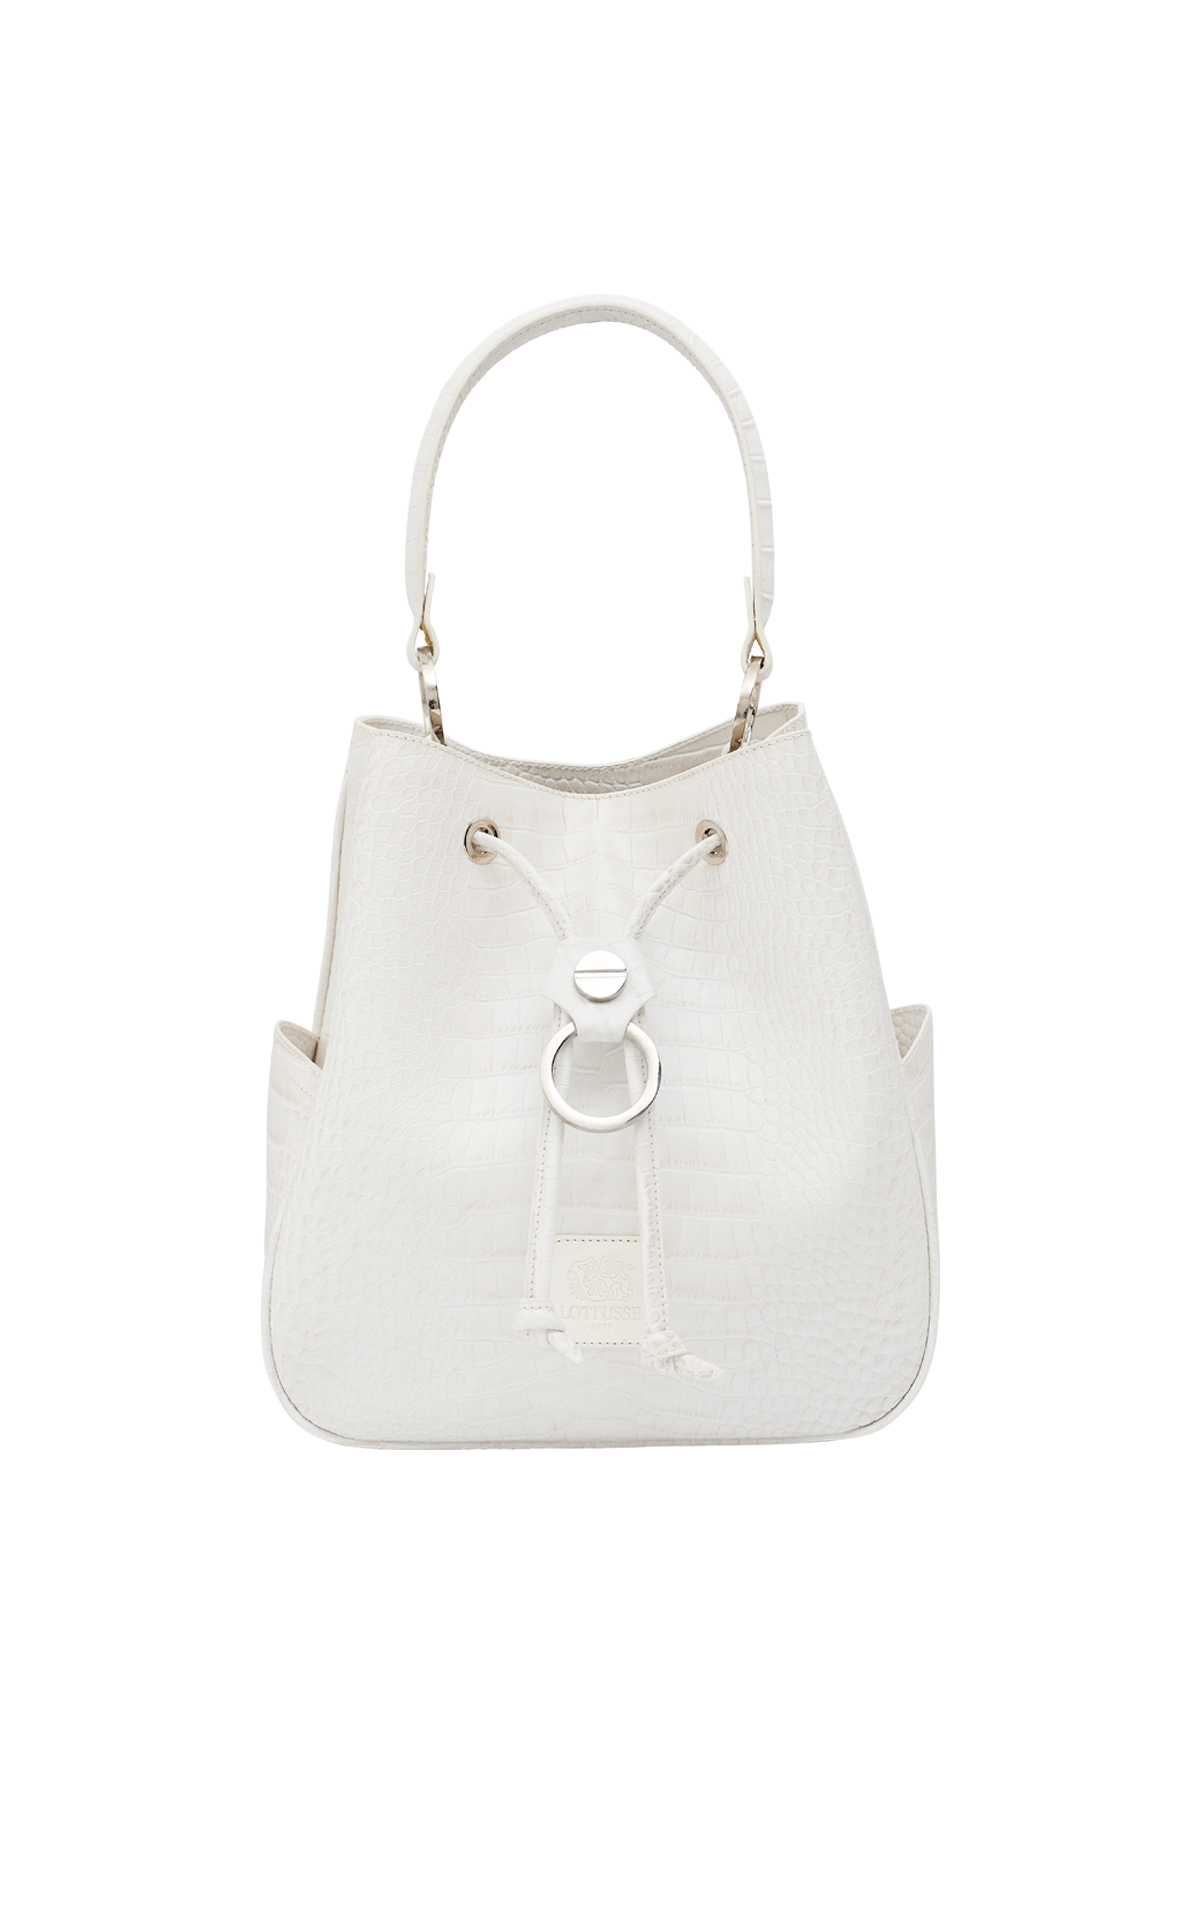 White leather bag Lottusse